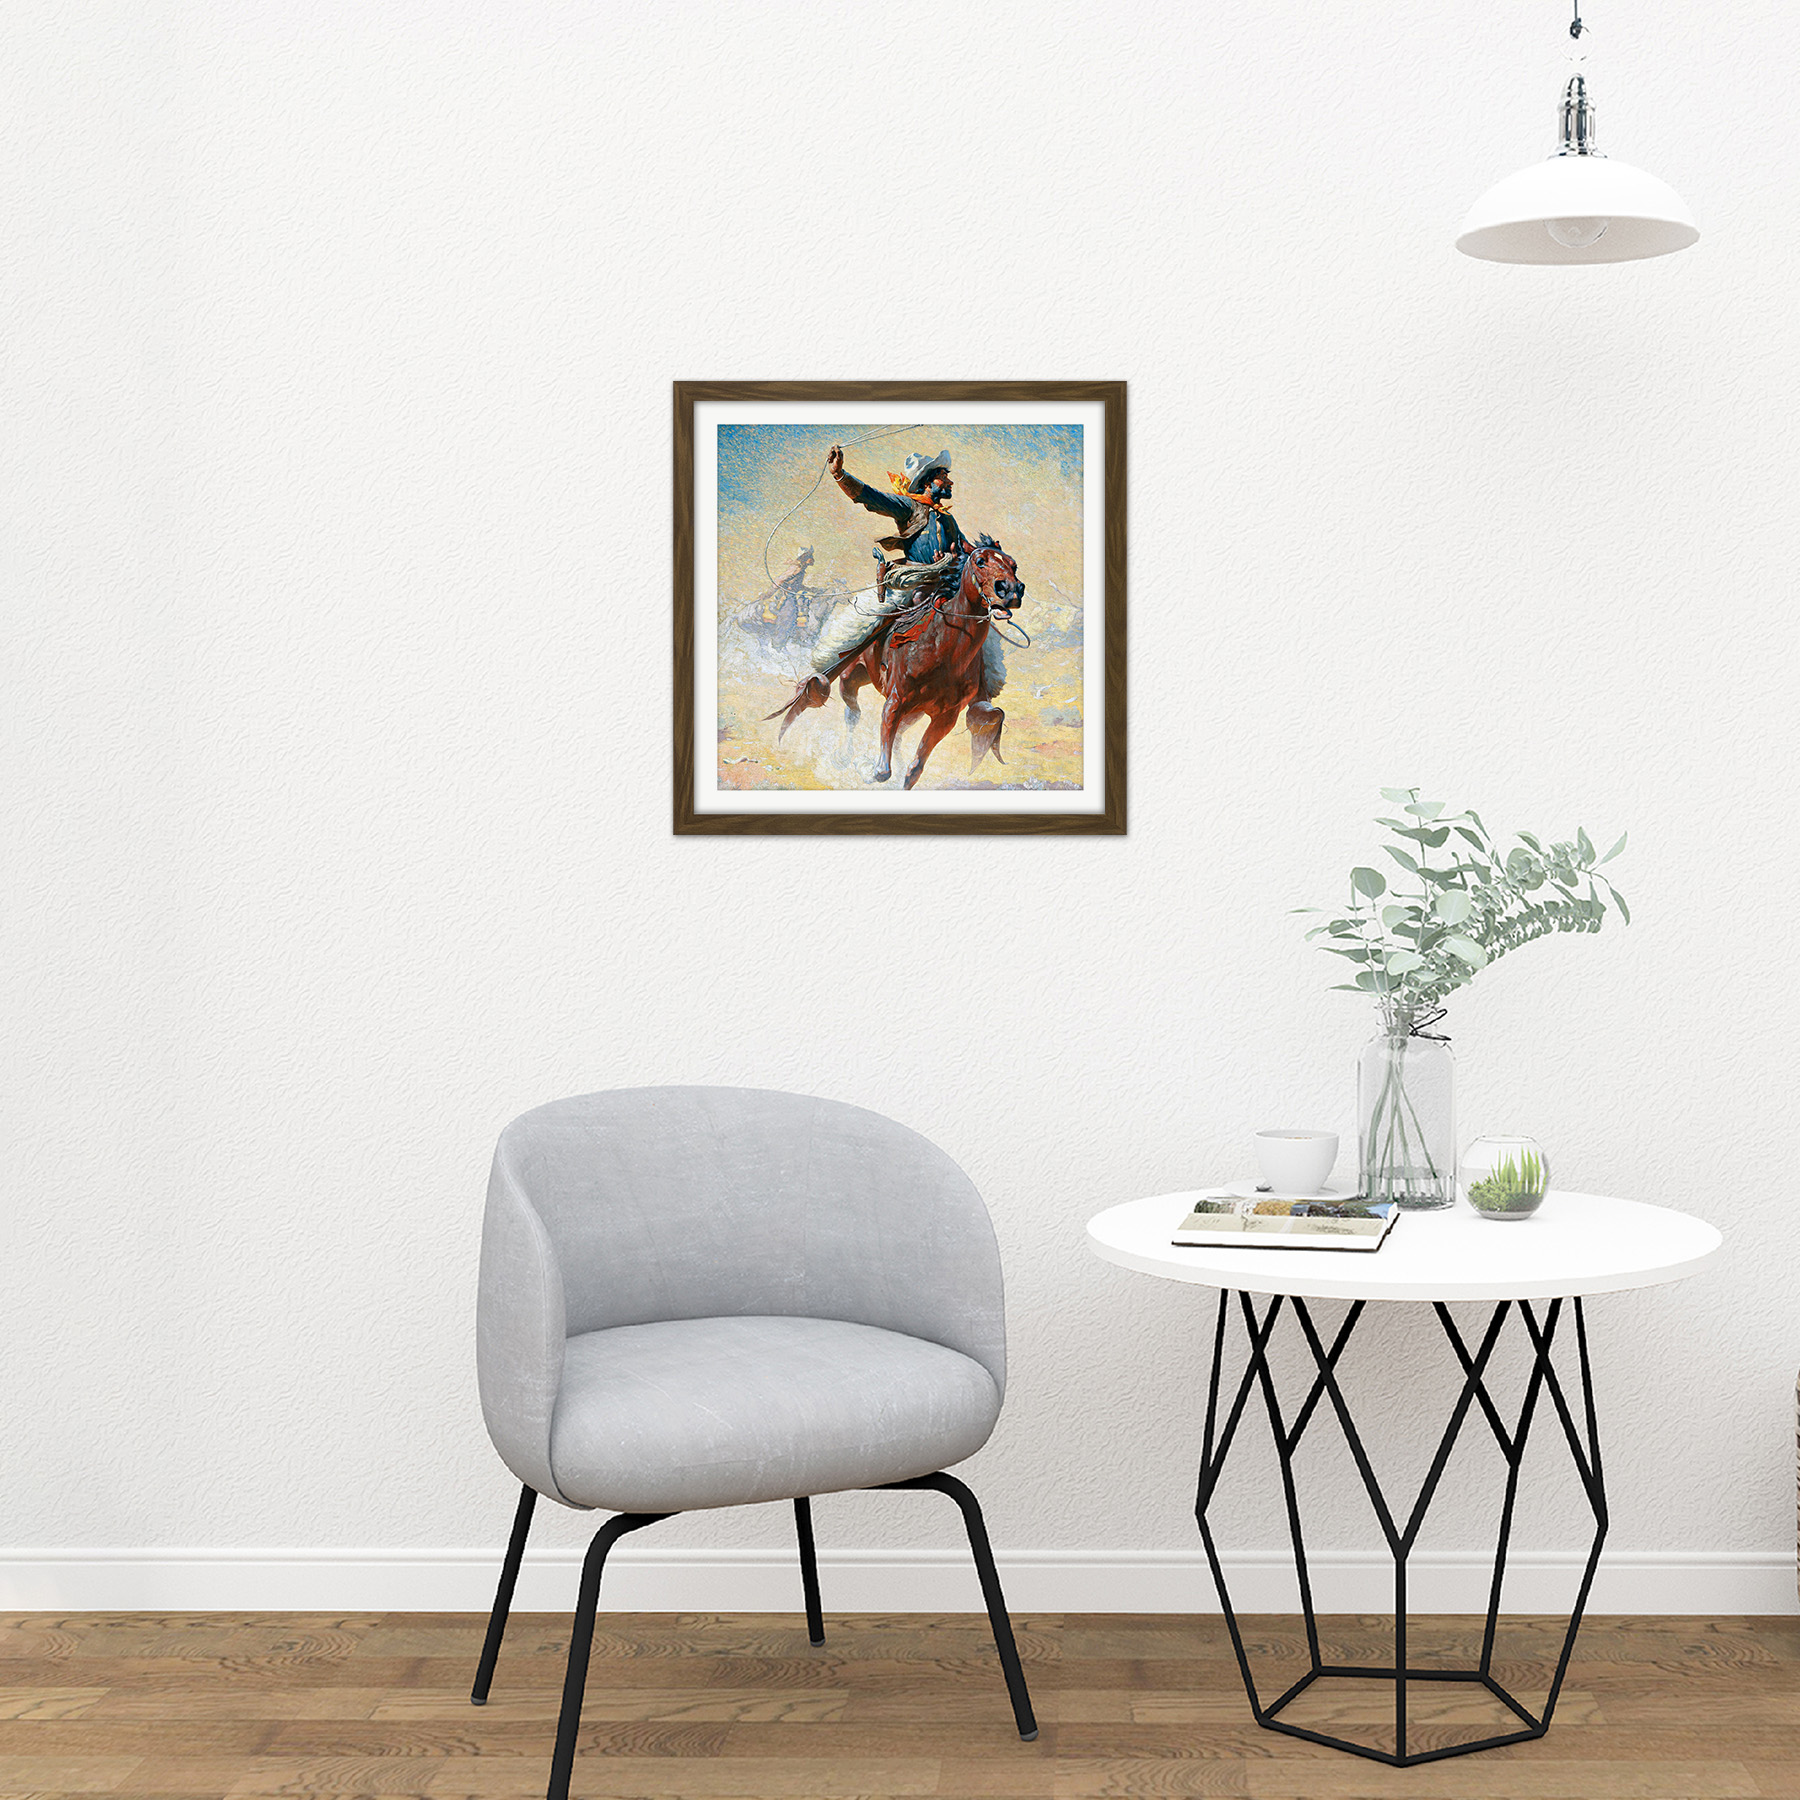 Leigh-The-Roping-Cowboy-Lasso-Horse-Painting-Square-Framed-Wall-Art-16X16-In thumbnail 7